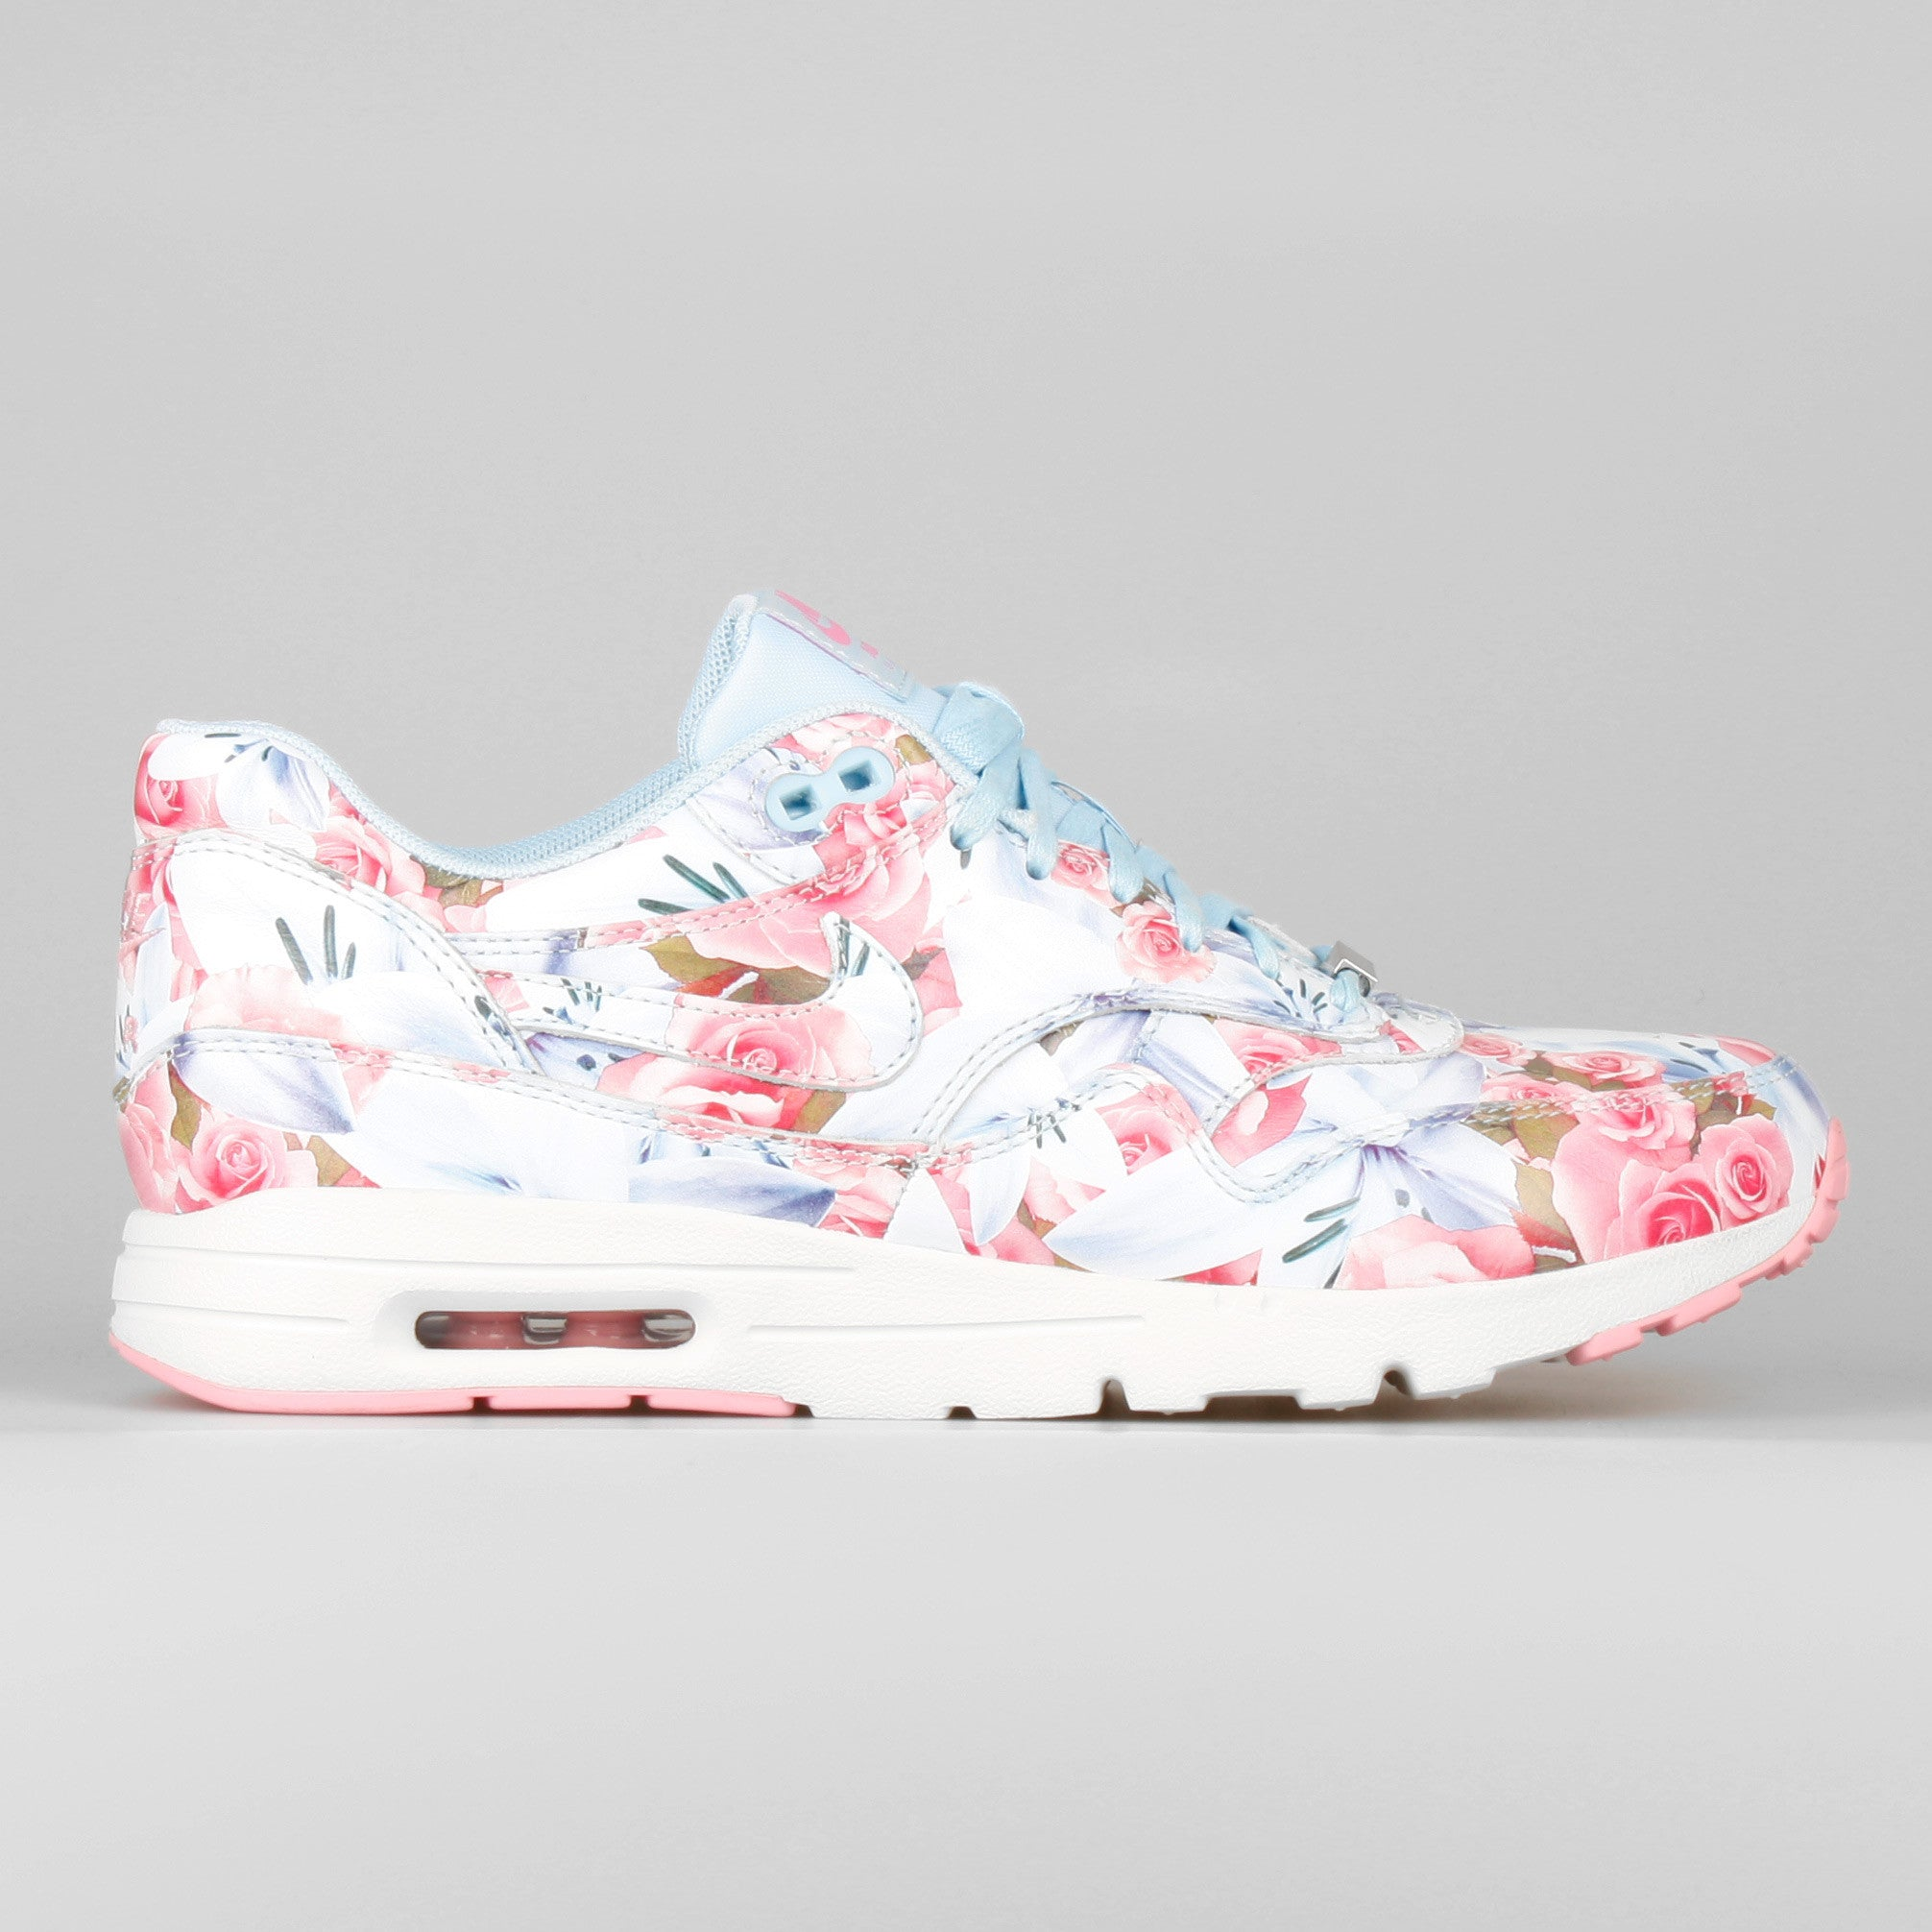 nike air max 1 ultra lotc qs sneakers